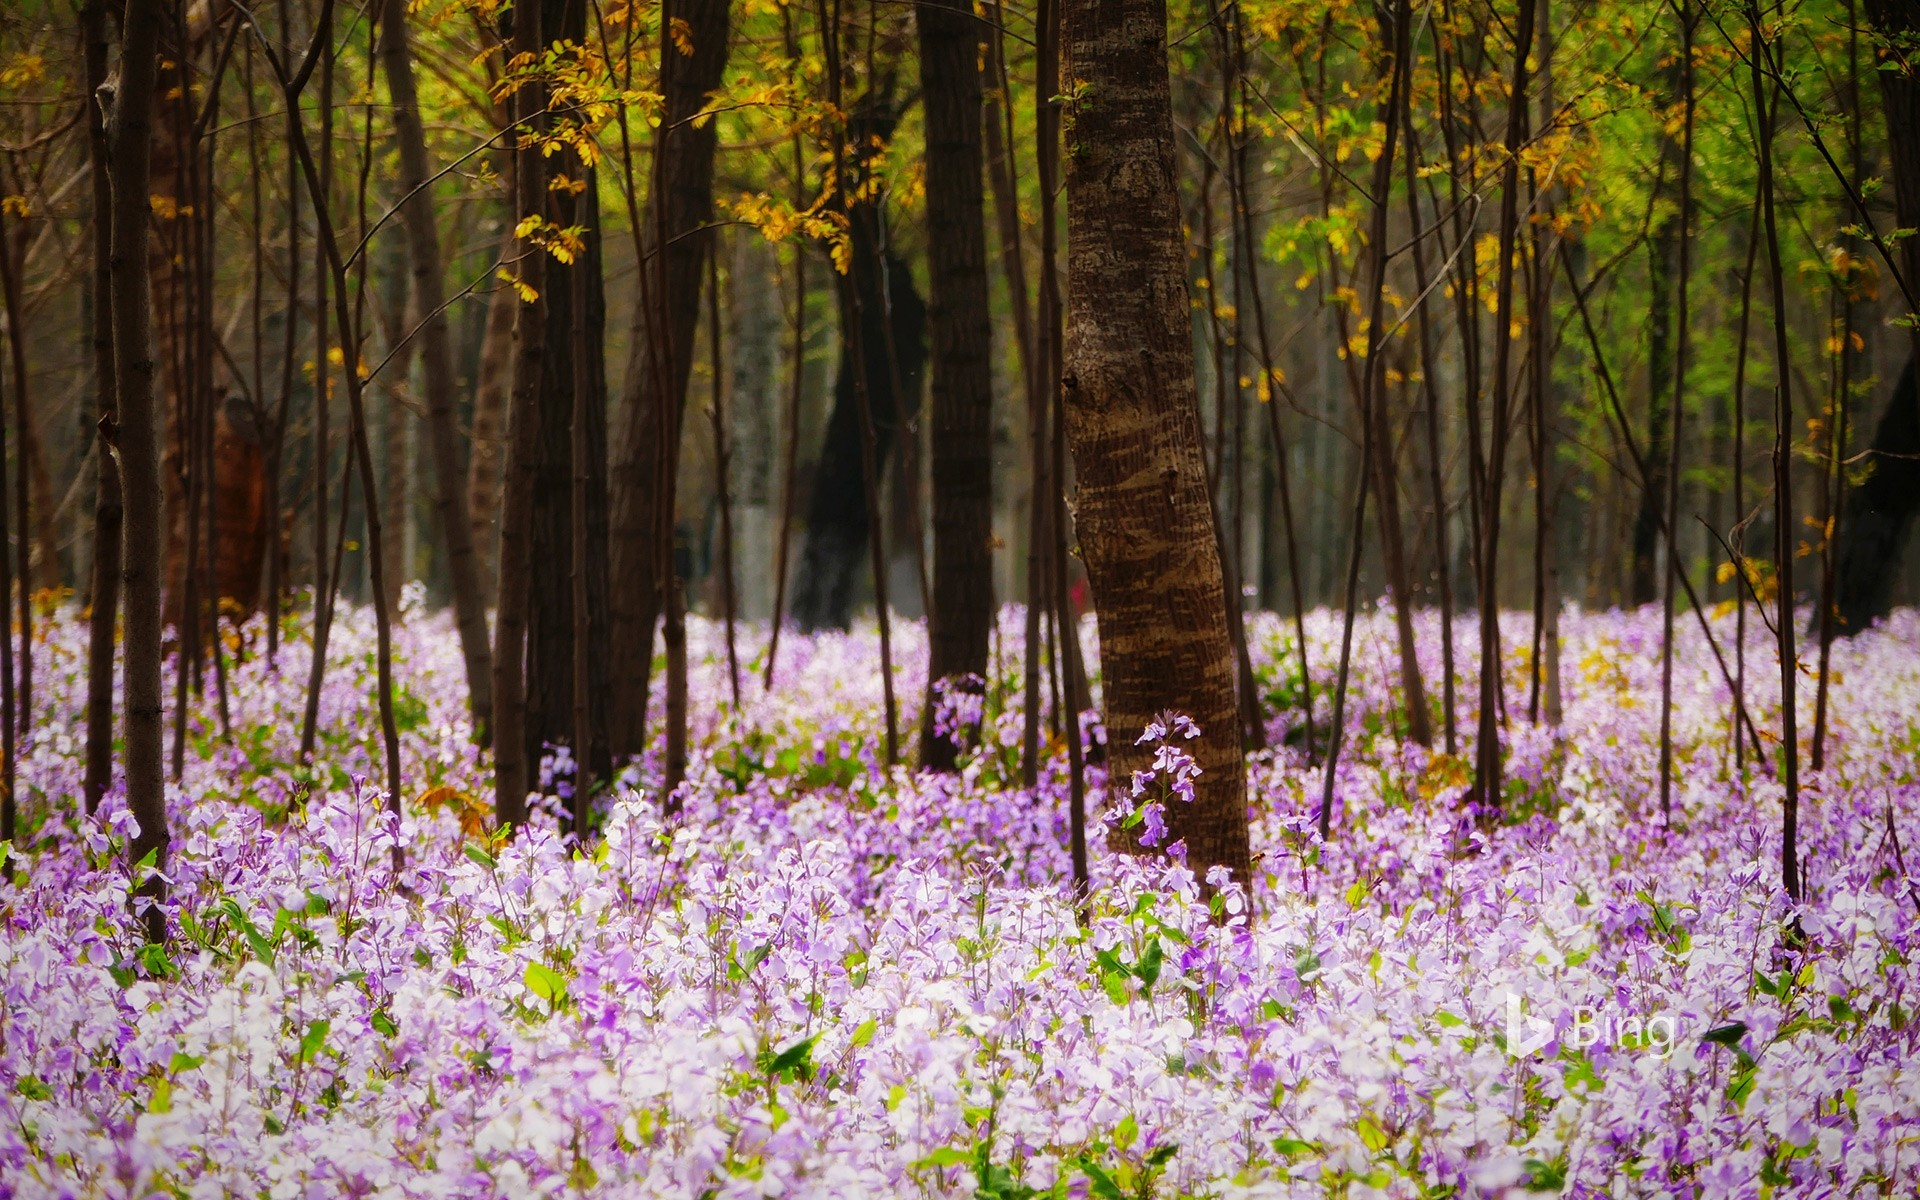 Forest with flowering plants, Beijing, China